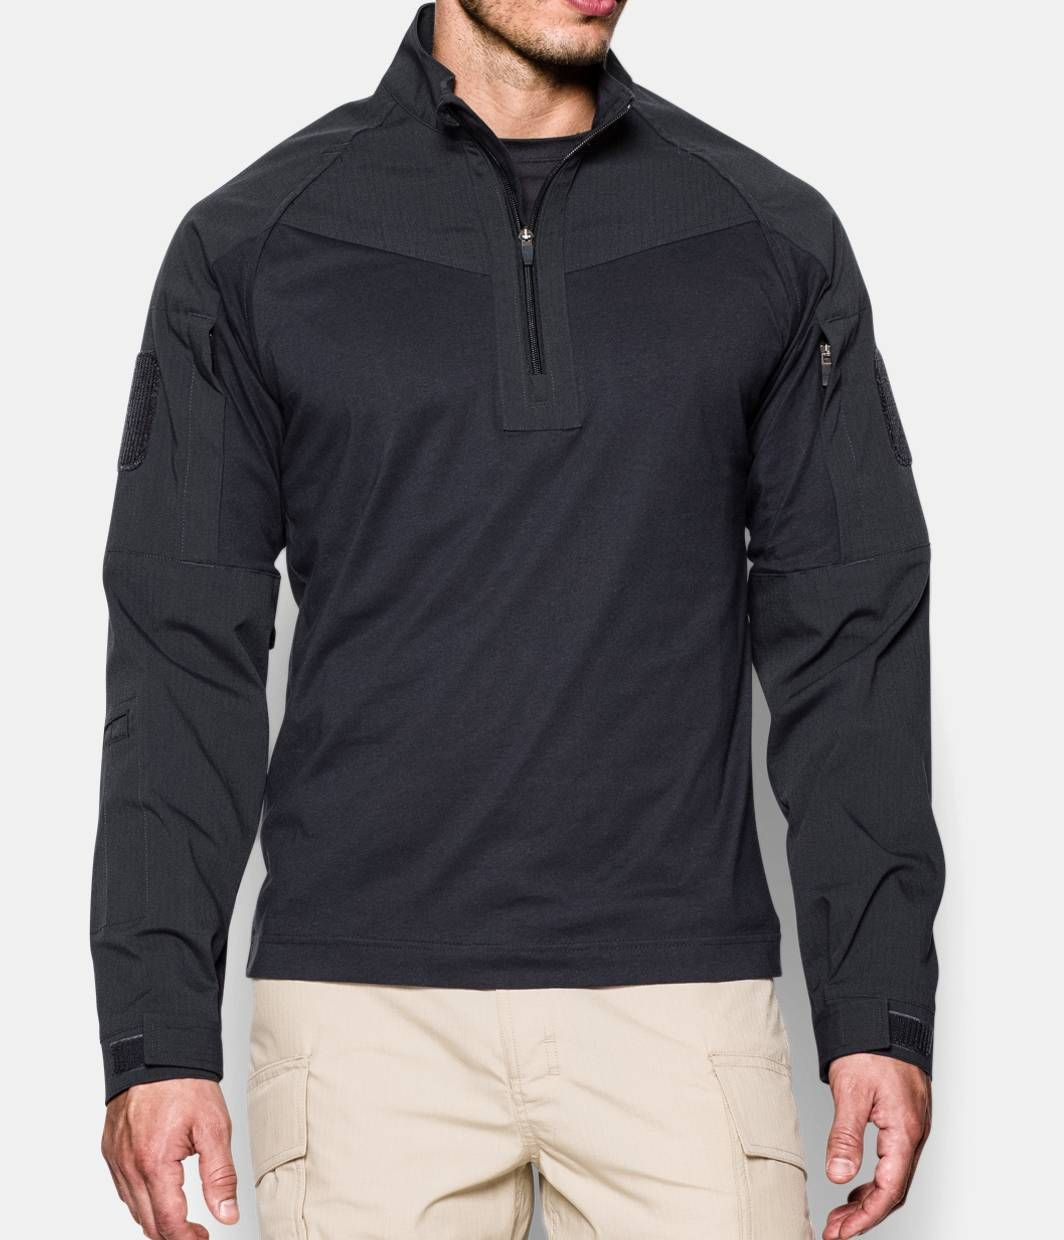 under armour shirt with hood